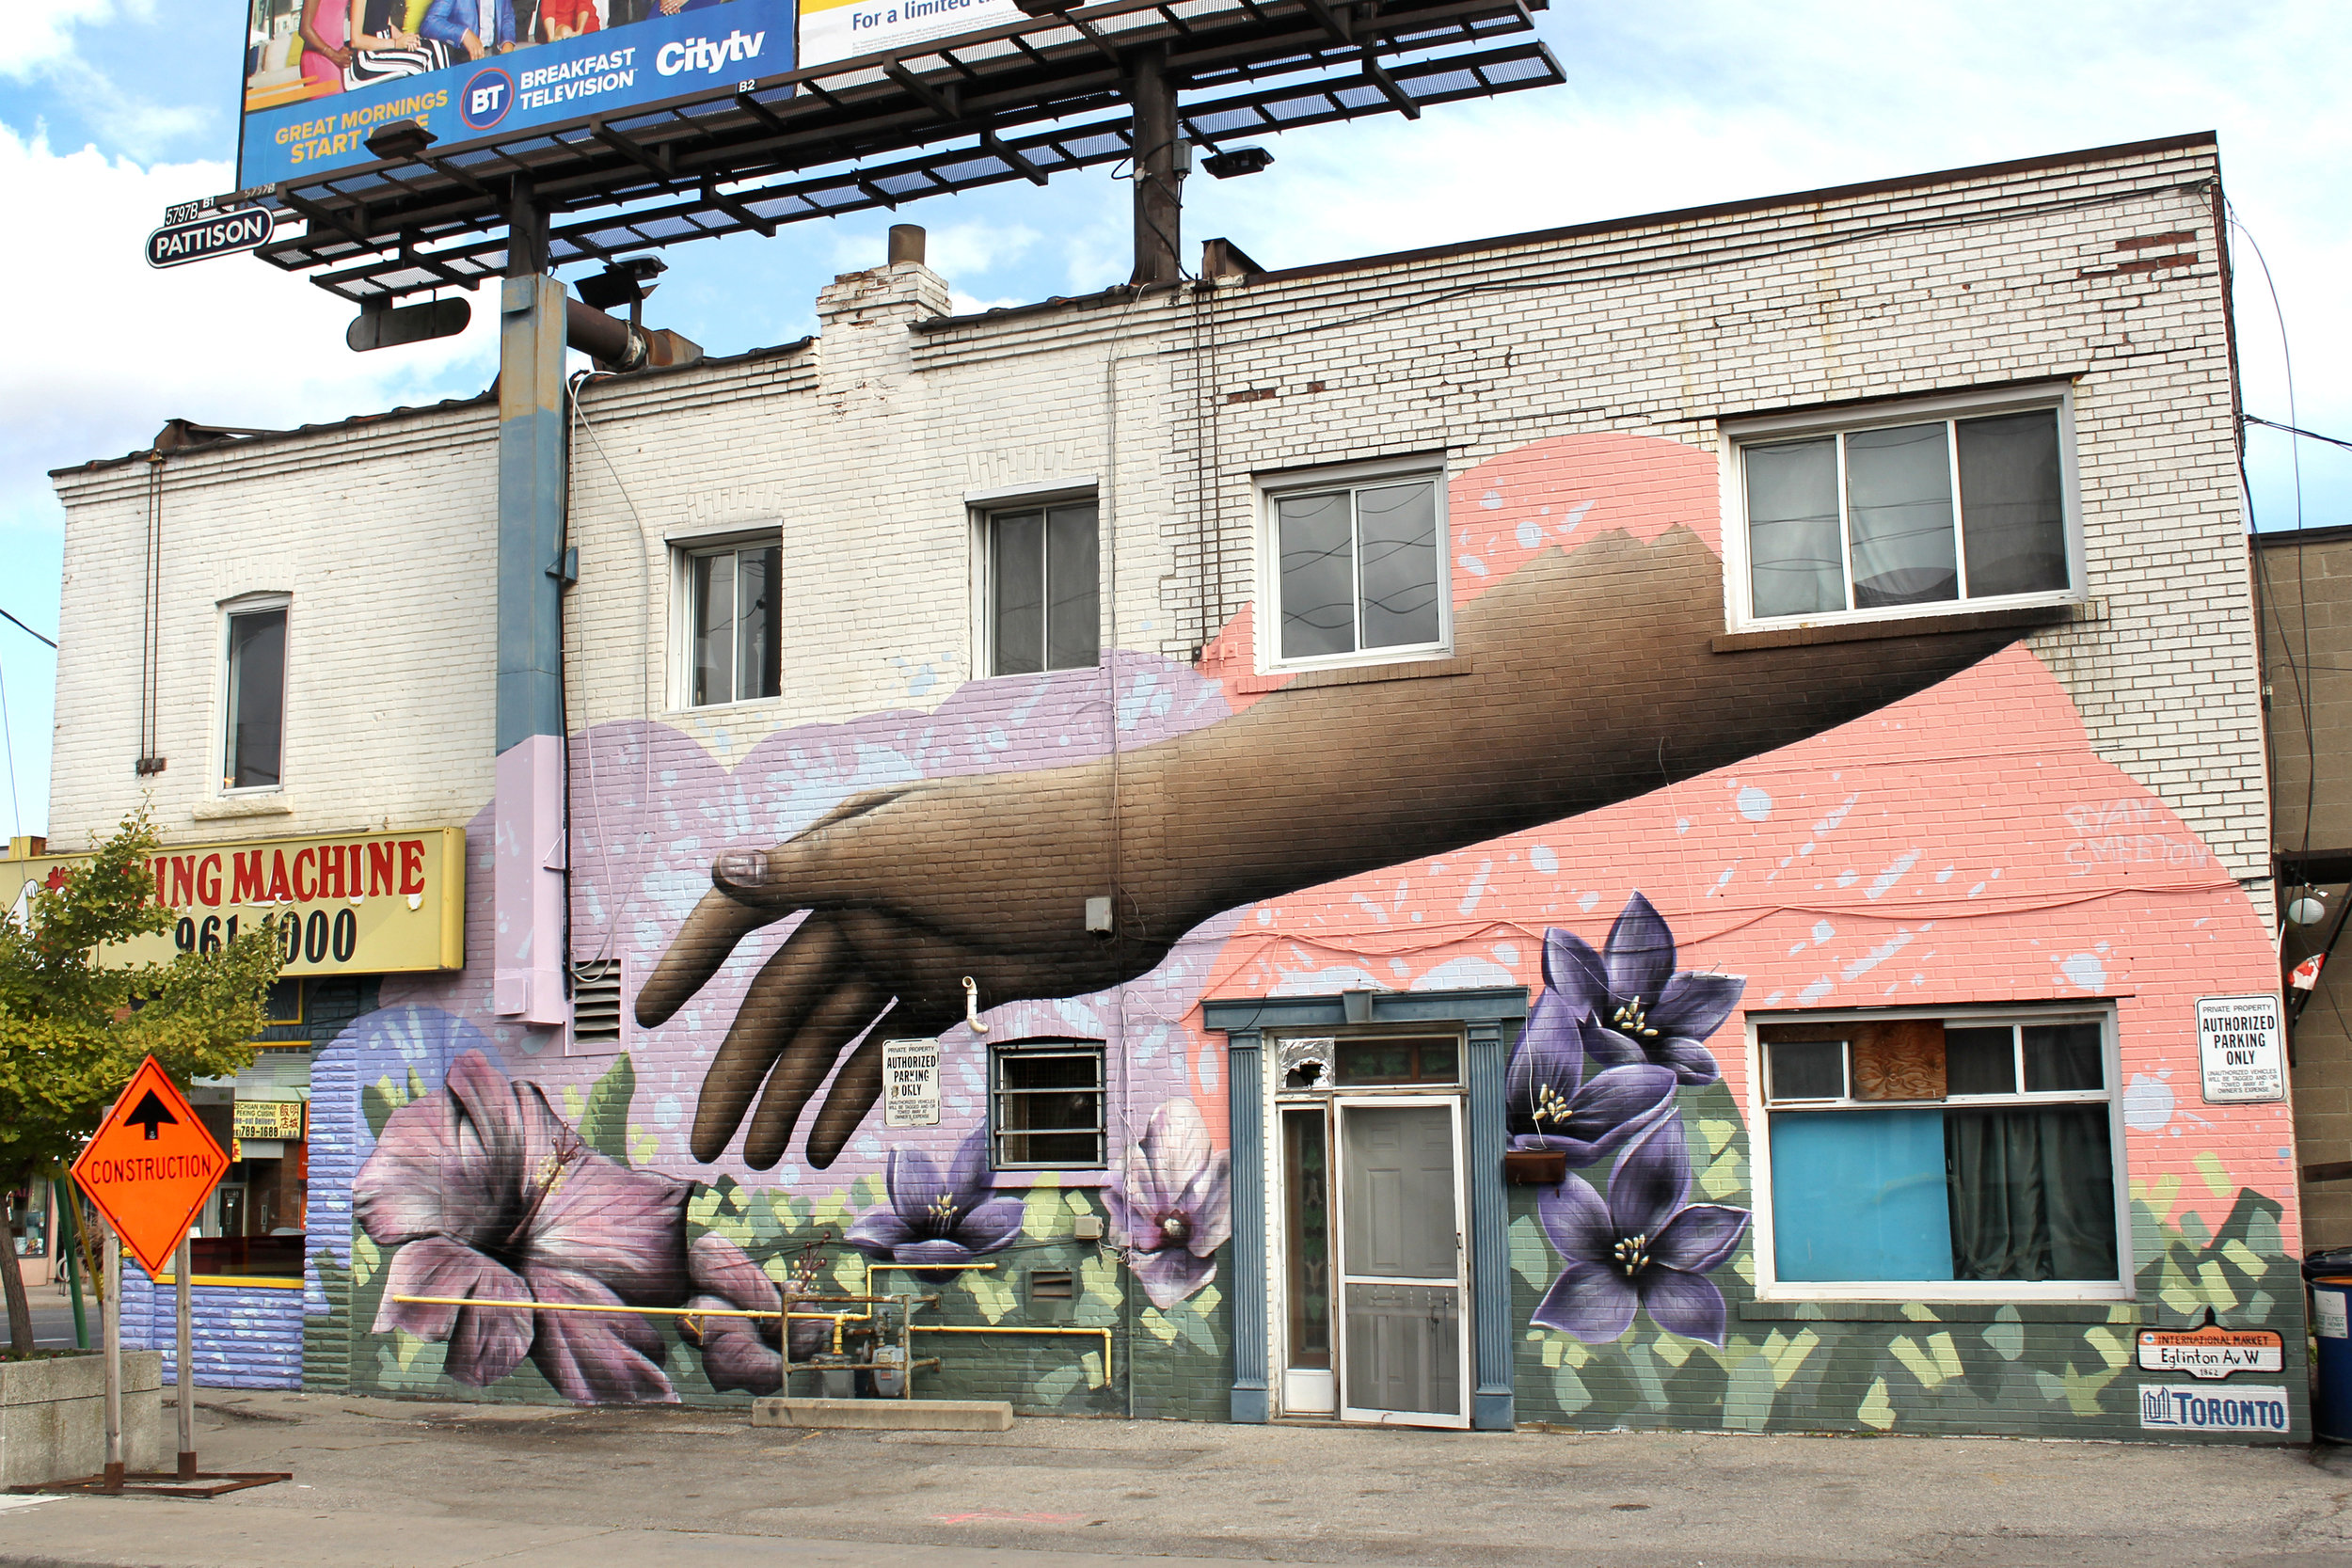 Together We Grow, Mural for the York Eglinton BIA